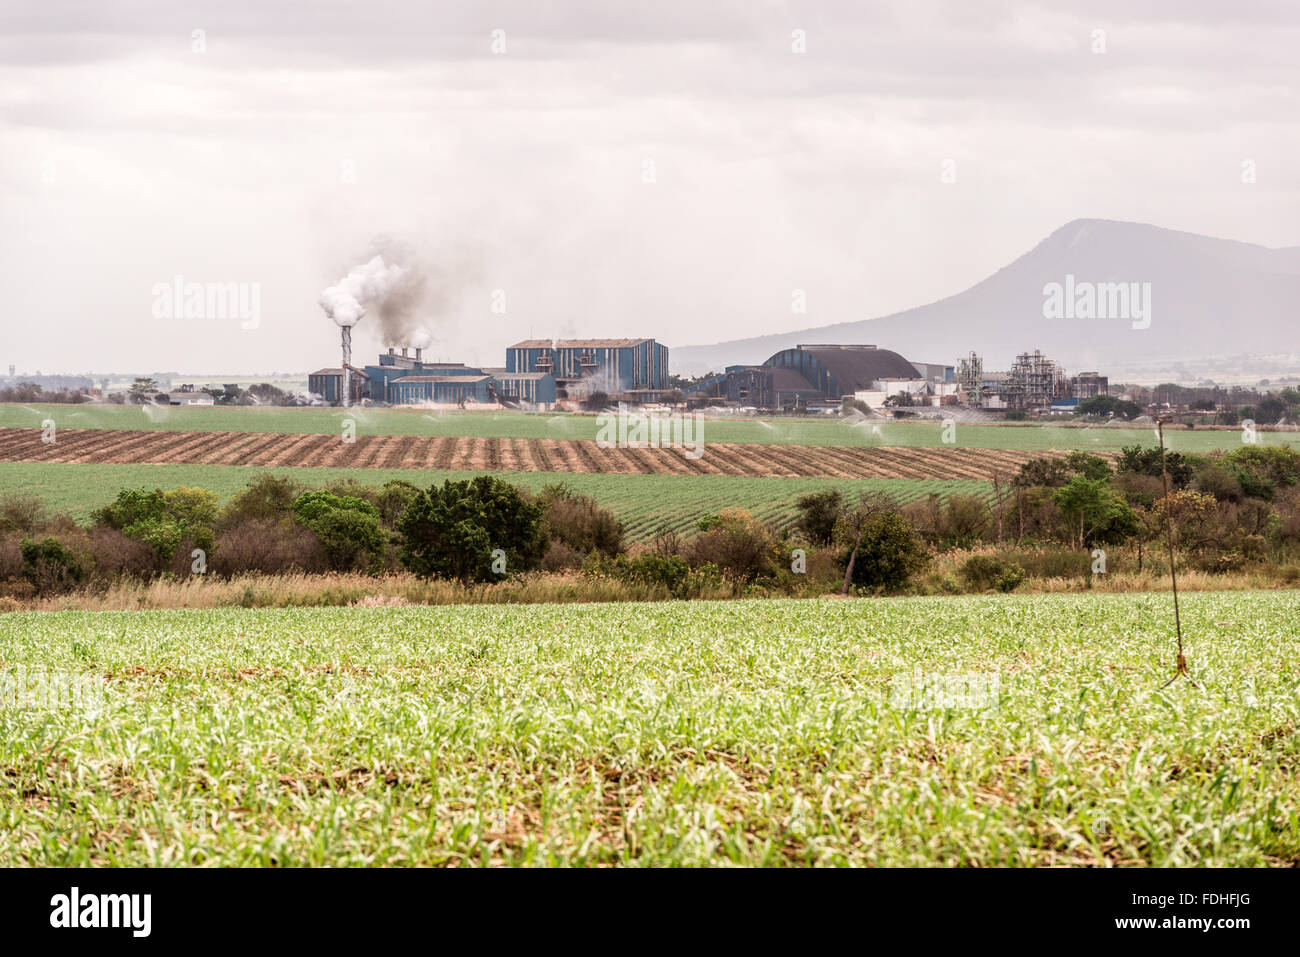 Sugar Refinery in Lubombo, Swaziland, Africa. - Stock Image